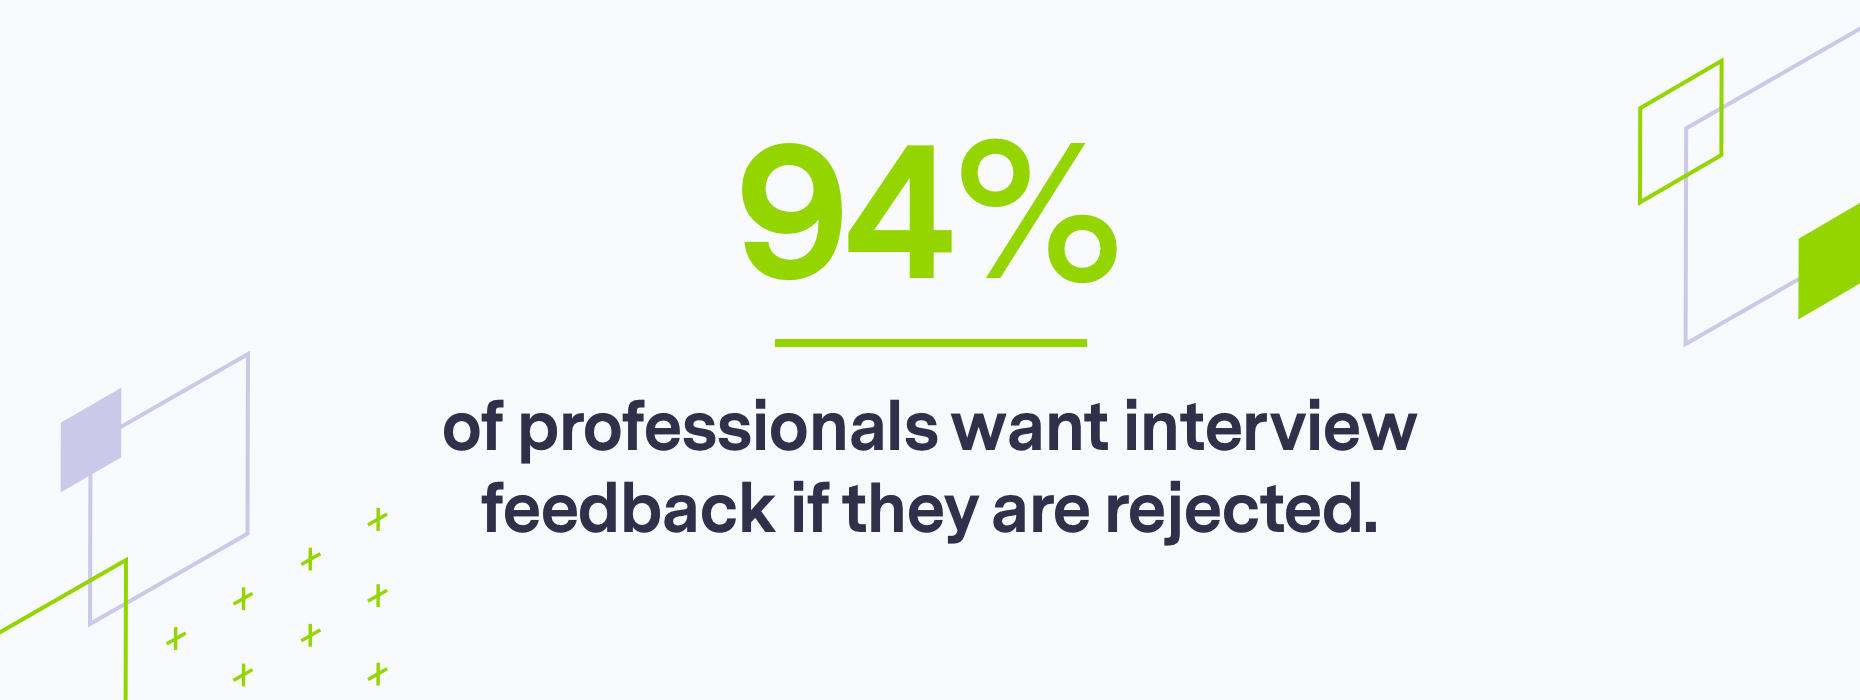 Stat on professionals wanting feedback